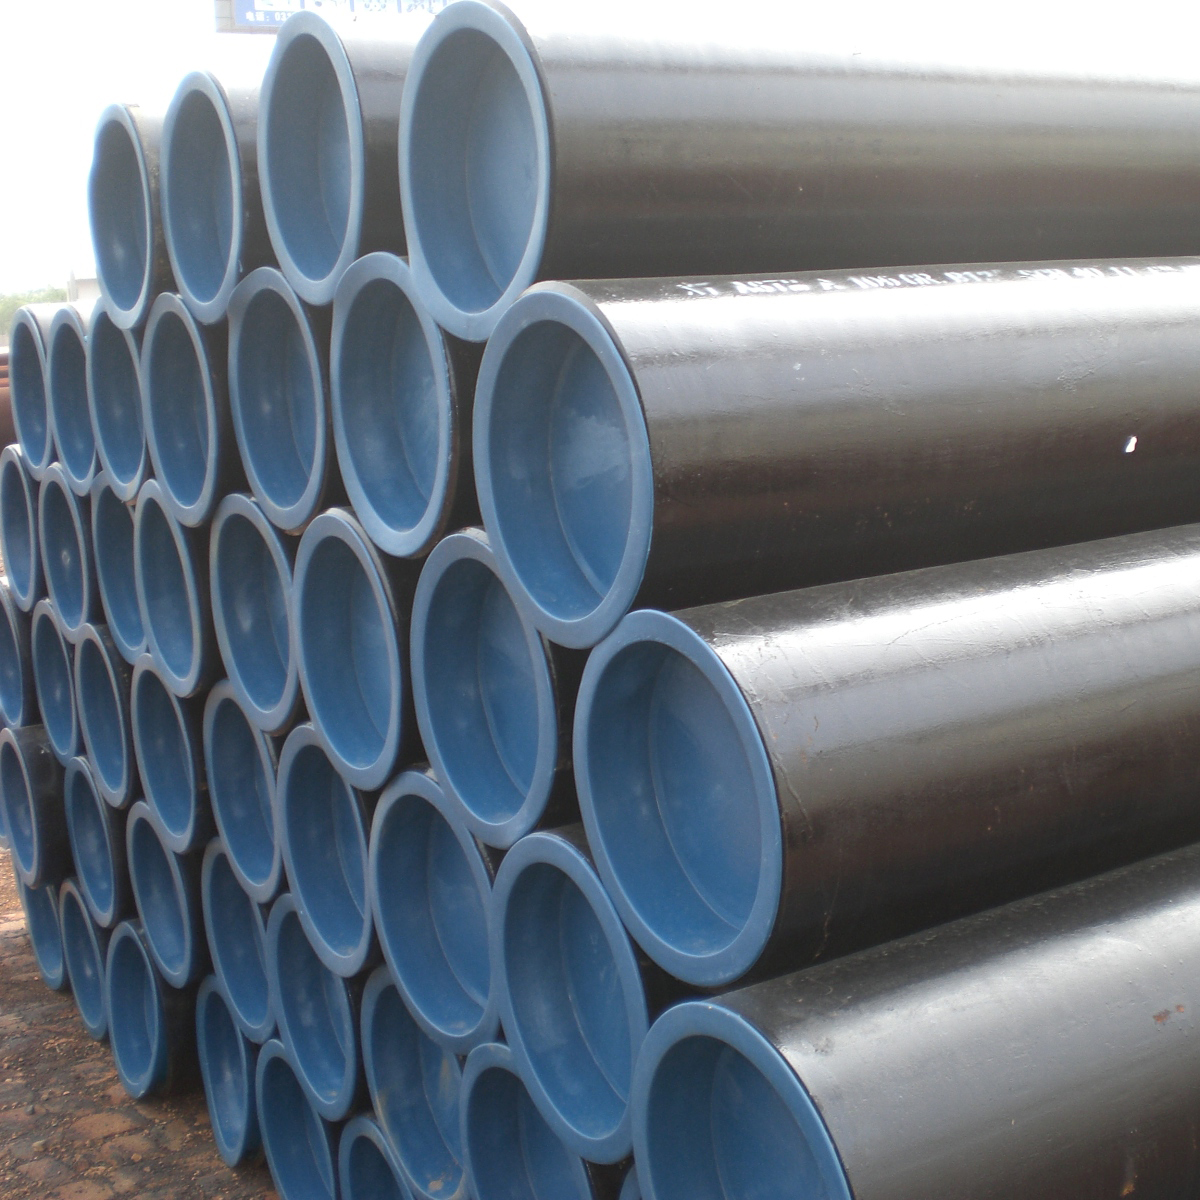 OD 508mm Thk 15mm Steel Pipe ERW ST37 3LPE DIN 30670